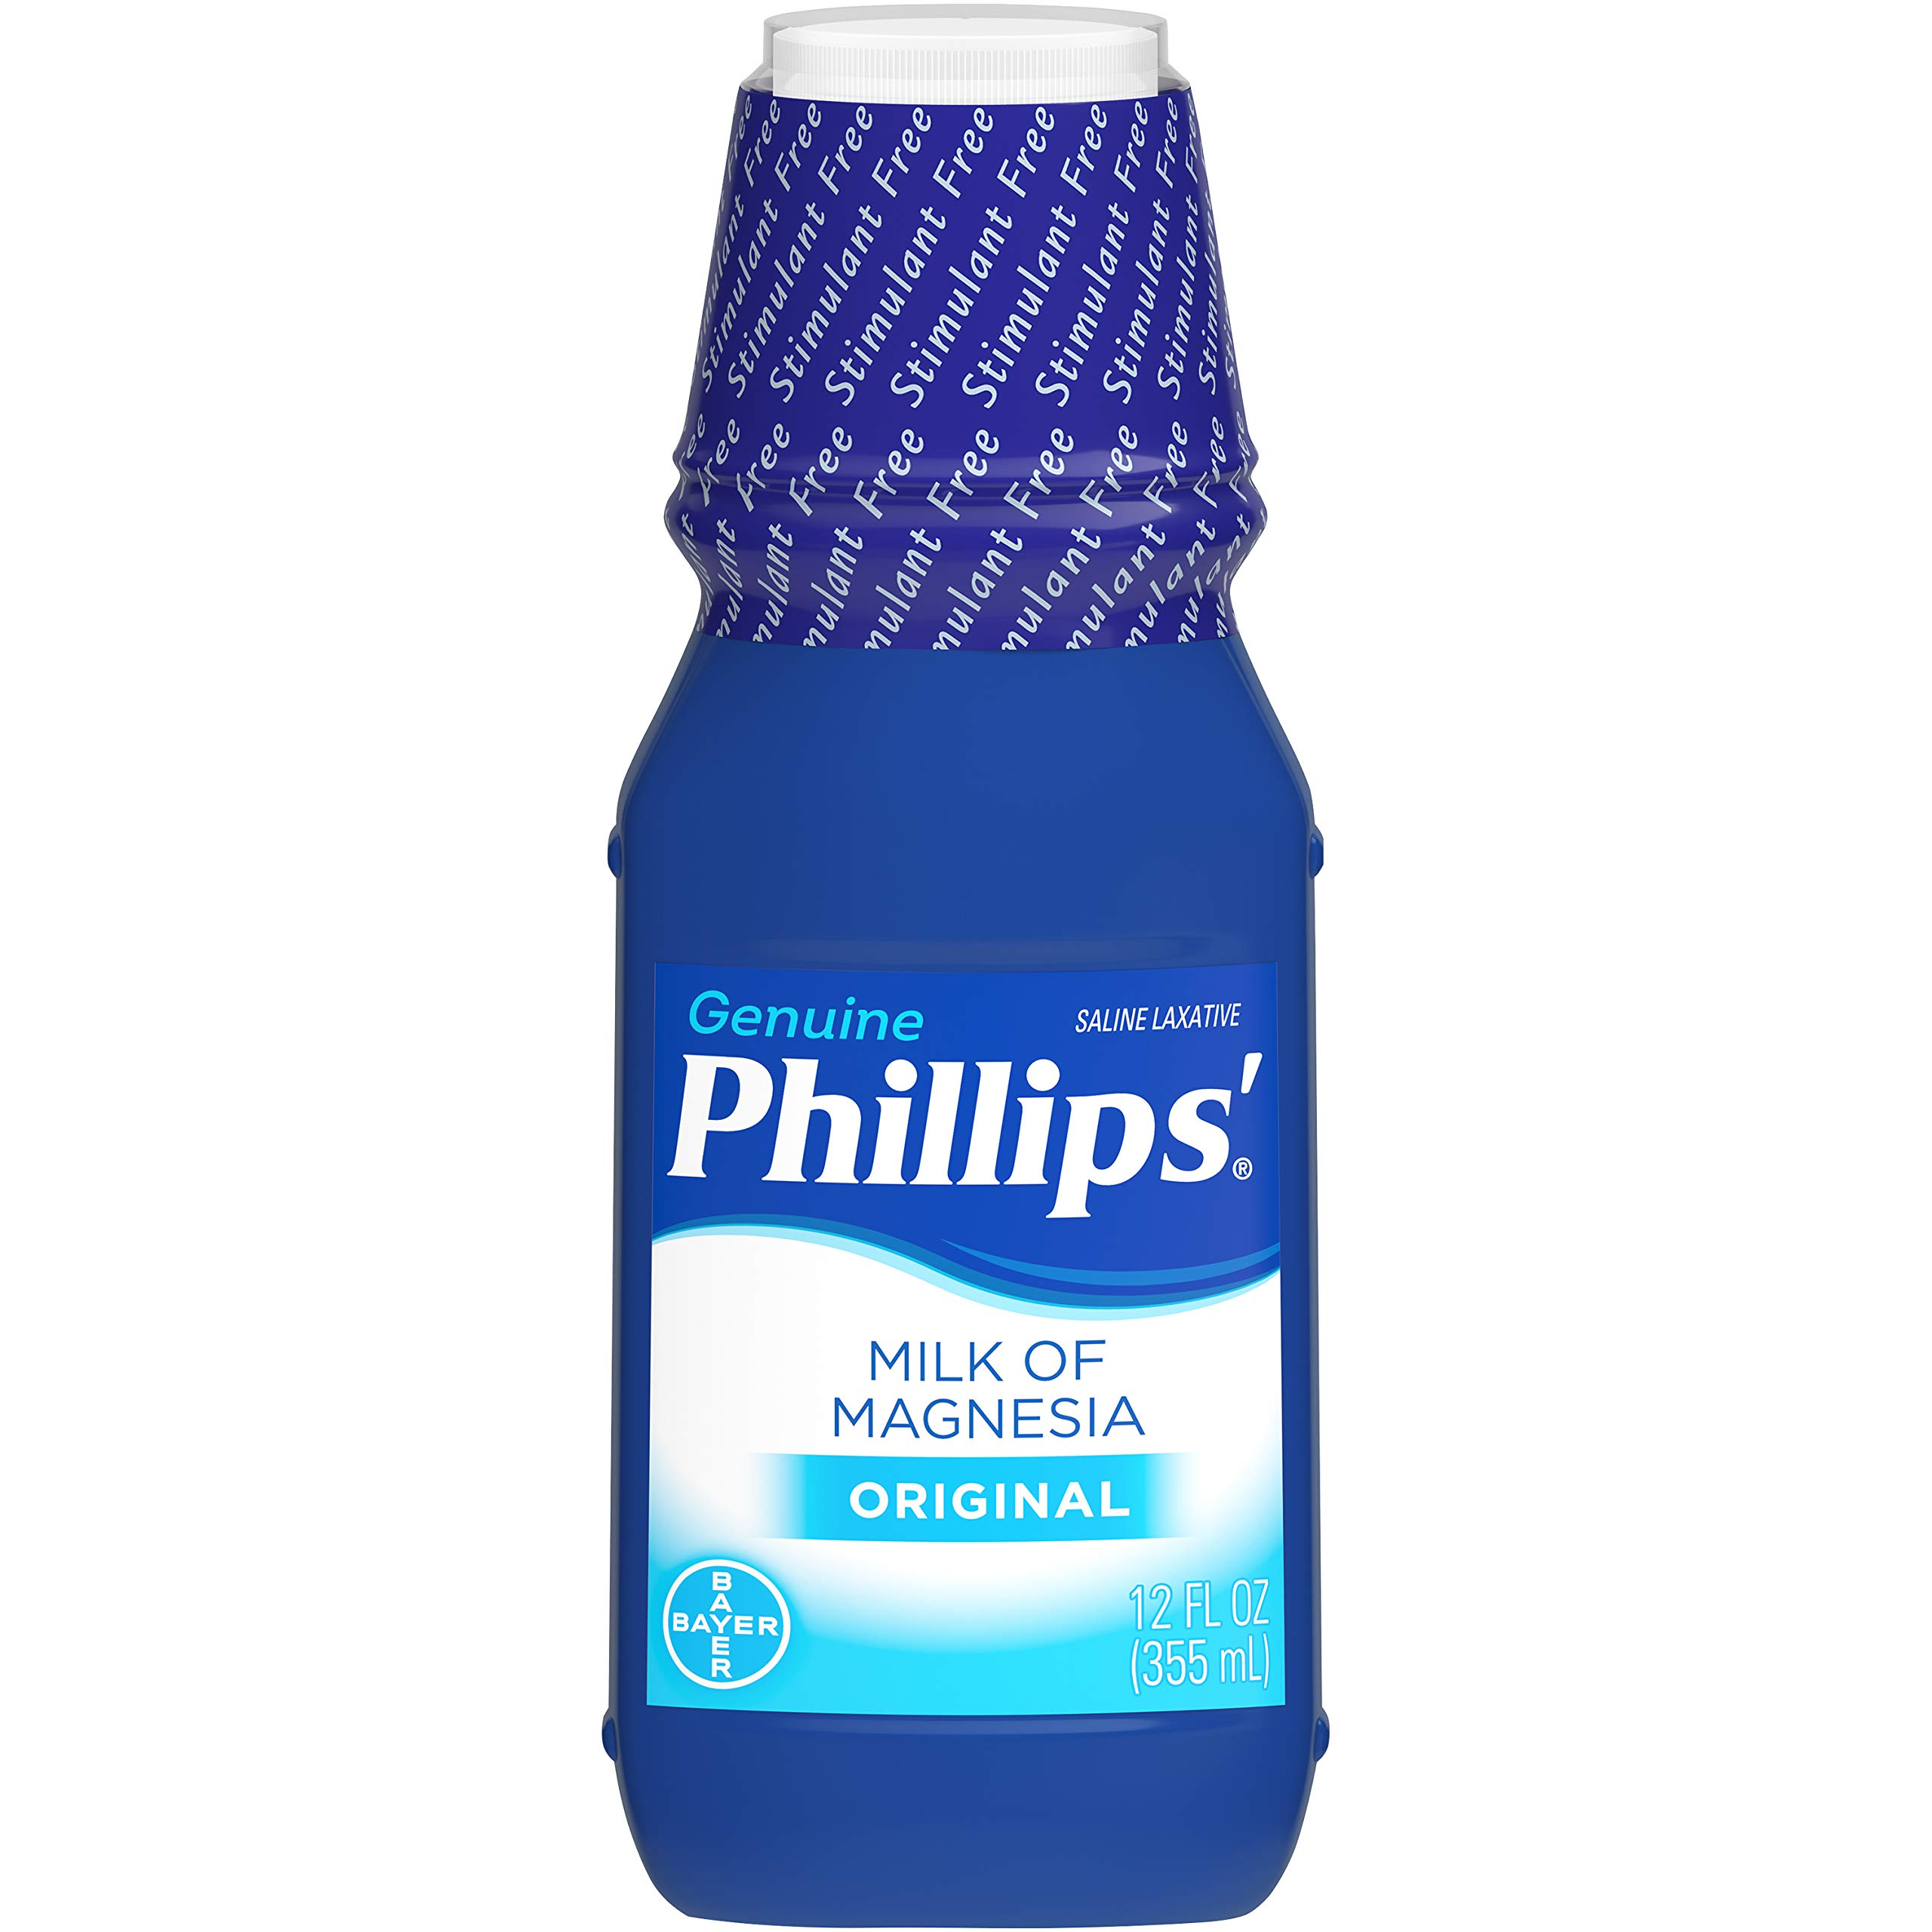 349928 Laxative Phillips Milk Of Magnesia Liquid 12oz Original Bt by Bayer Consumer Products -Part no. 349928